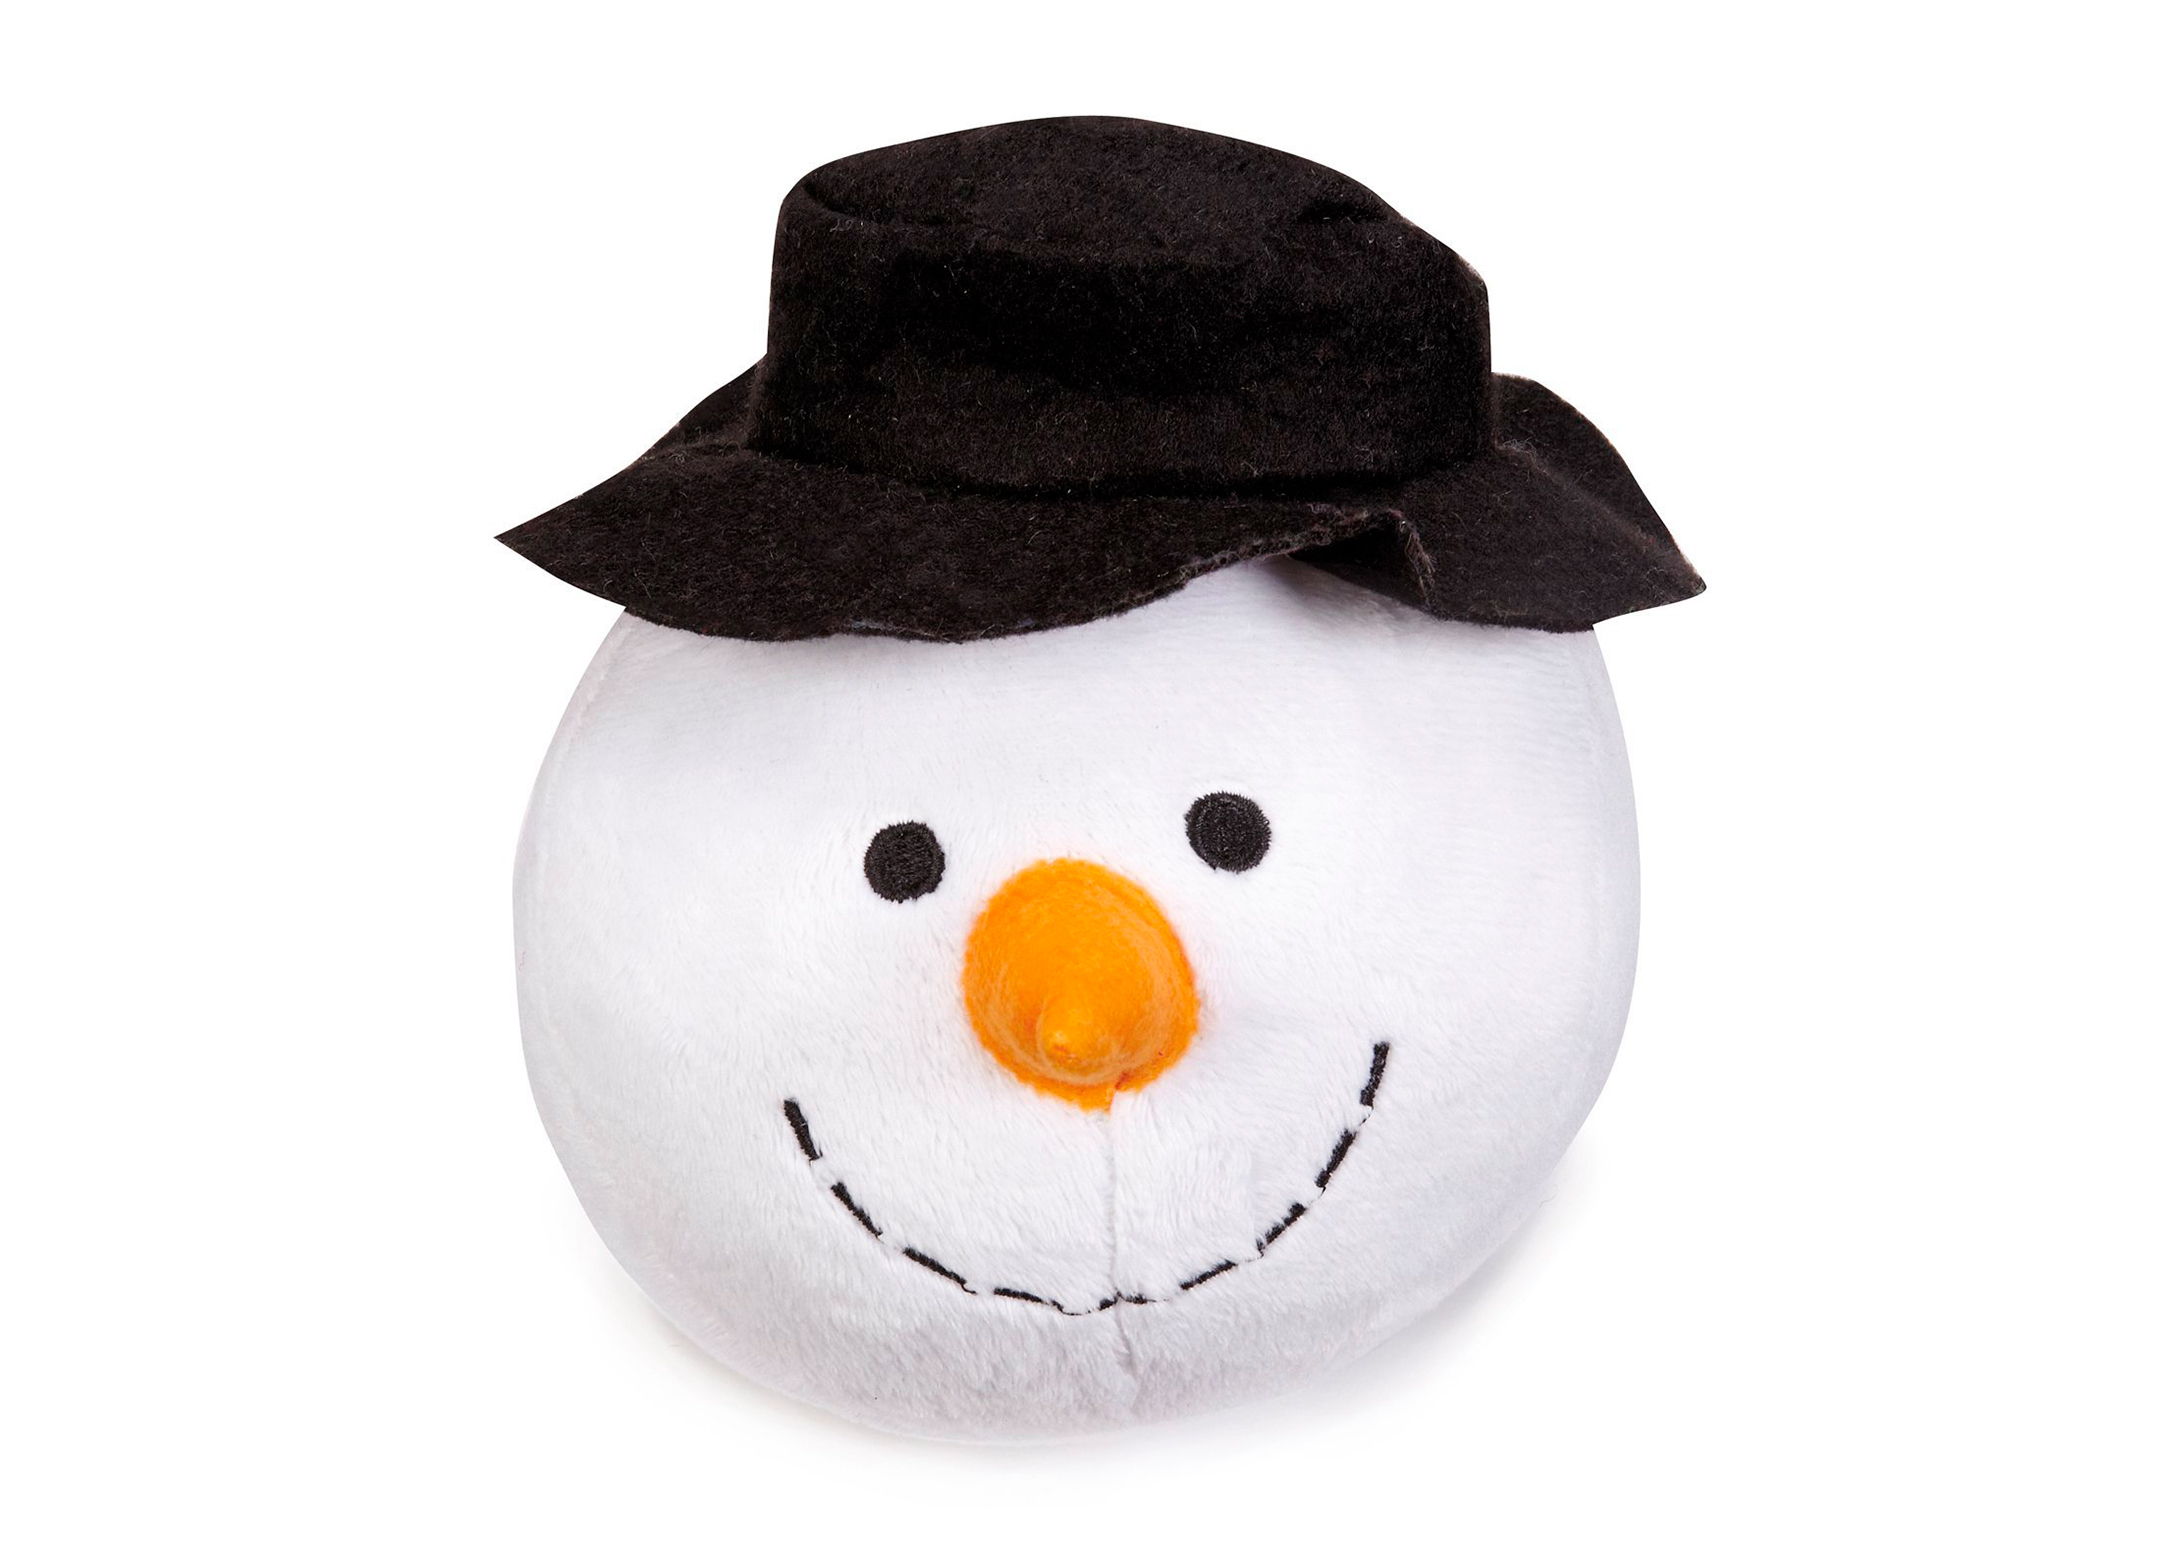 Griggles Xmas Snowball Gang Snowman 13cm Toys